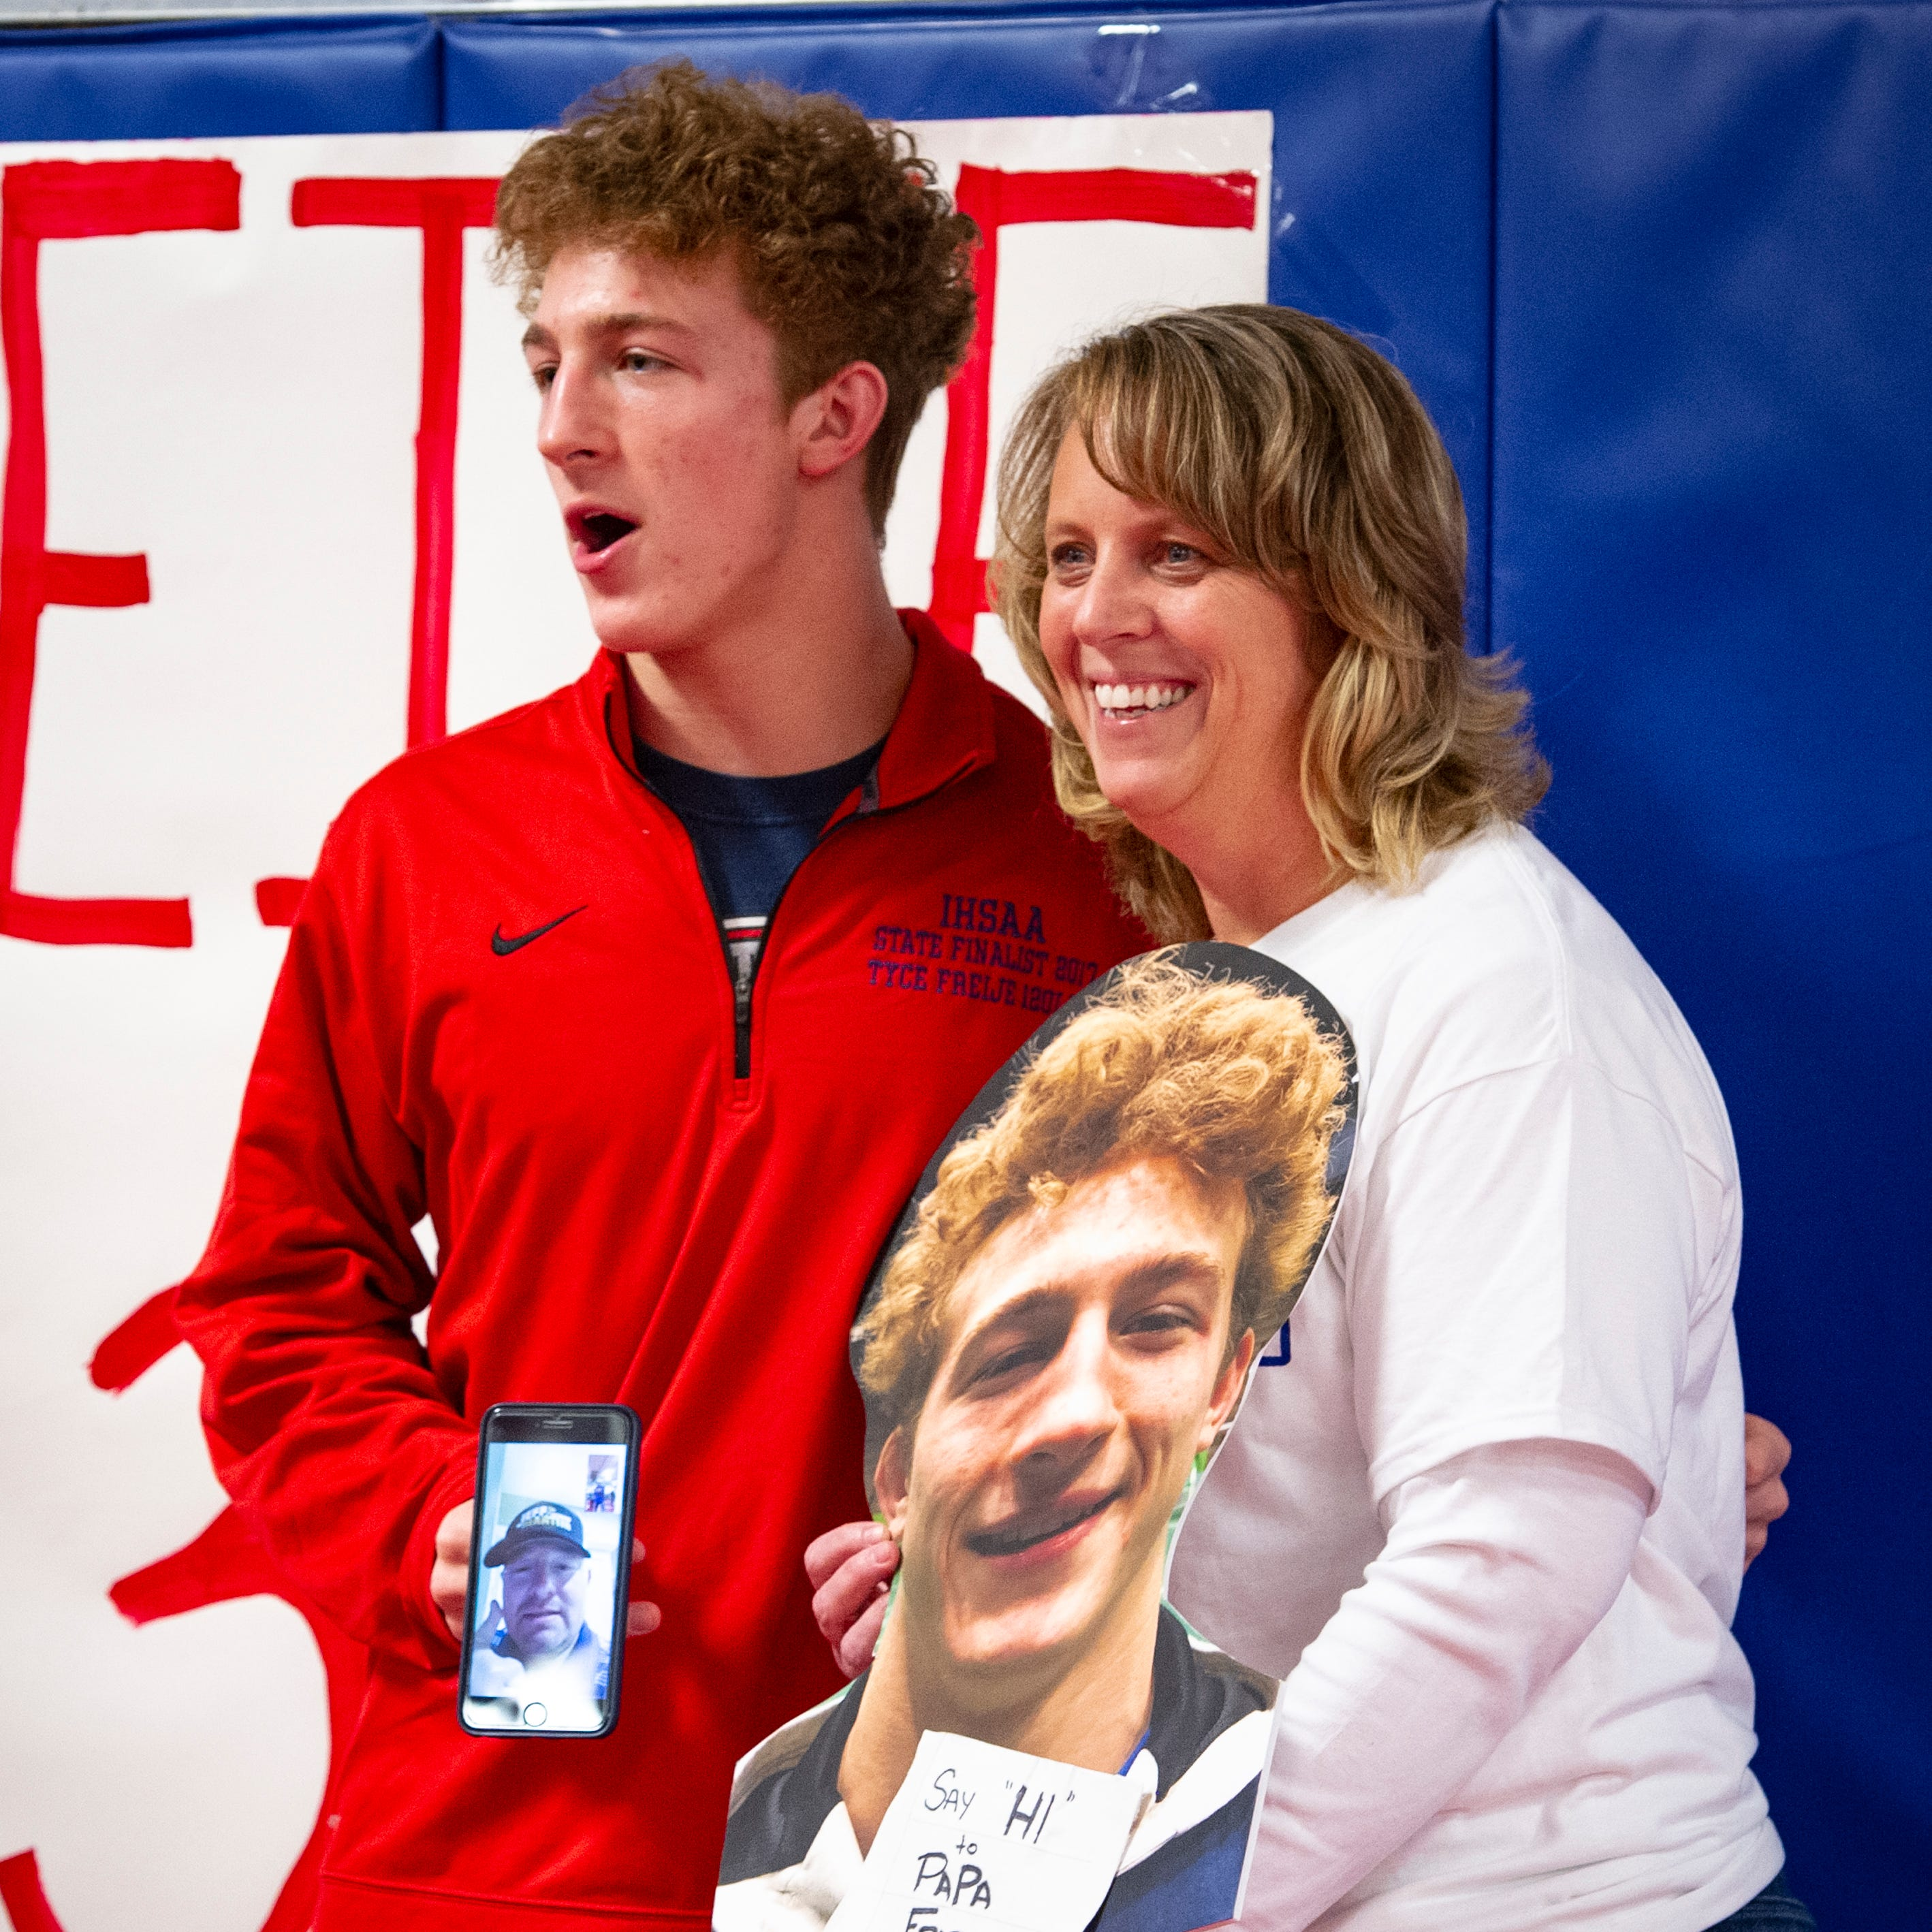 Roncalli wrestler Tyce Freije poses for photos with his mom, Jodie Freije, and his father, T.J. Freije, pictured on the phone, Feb, 19, 2019.